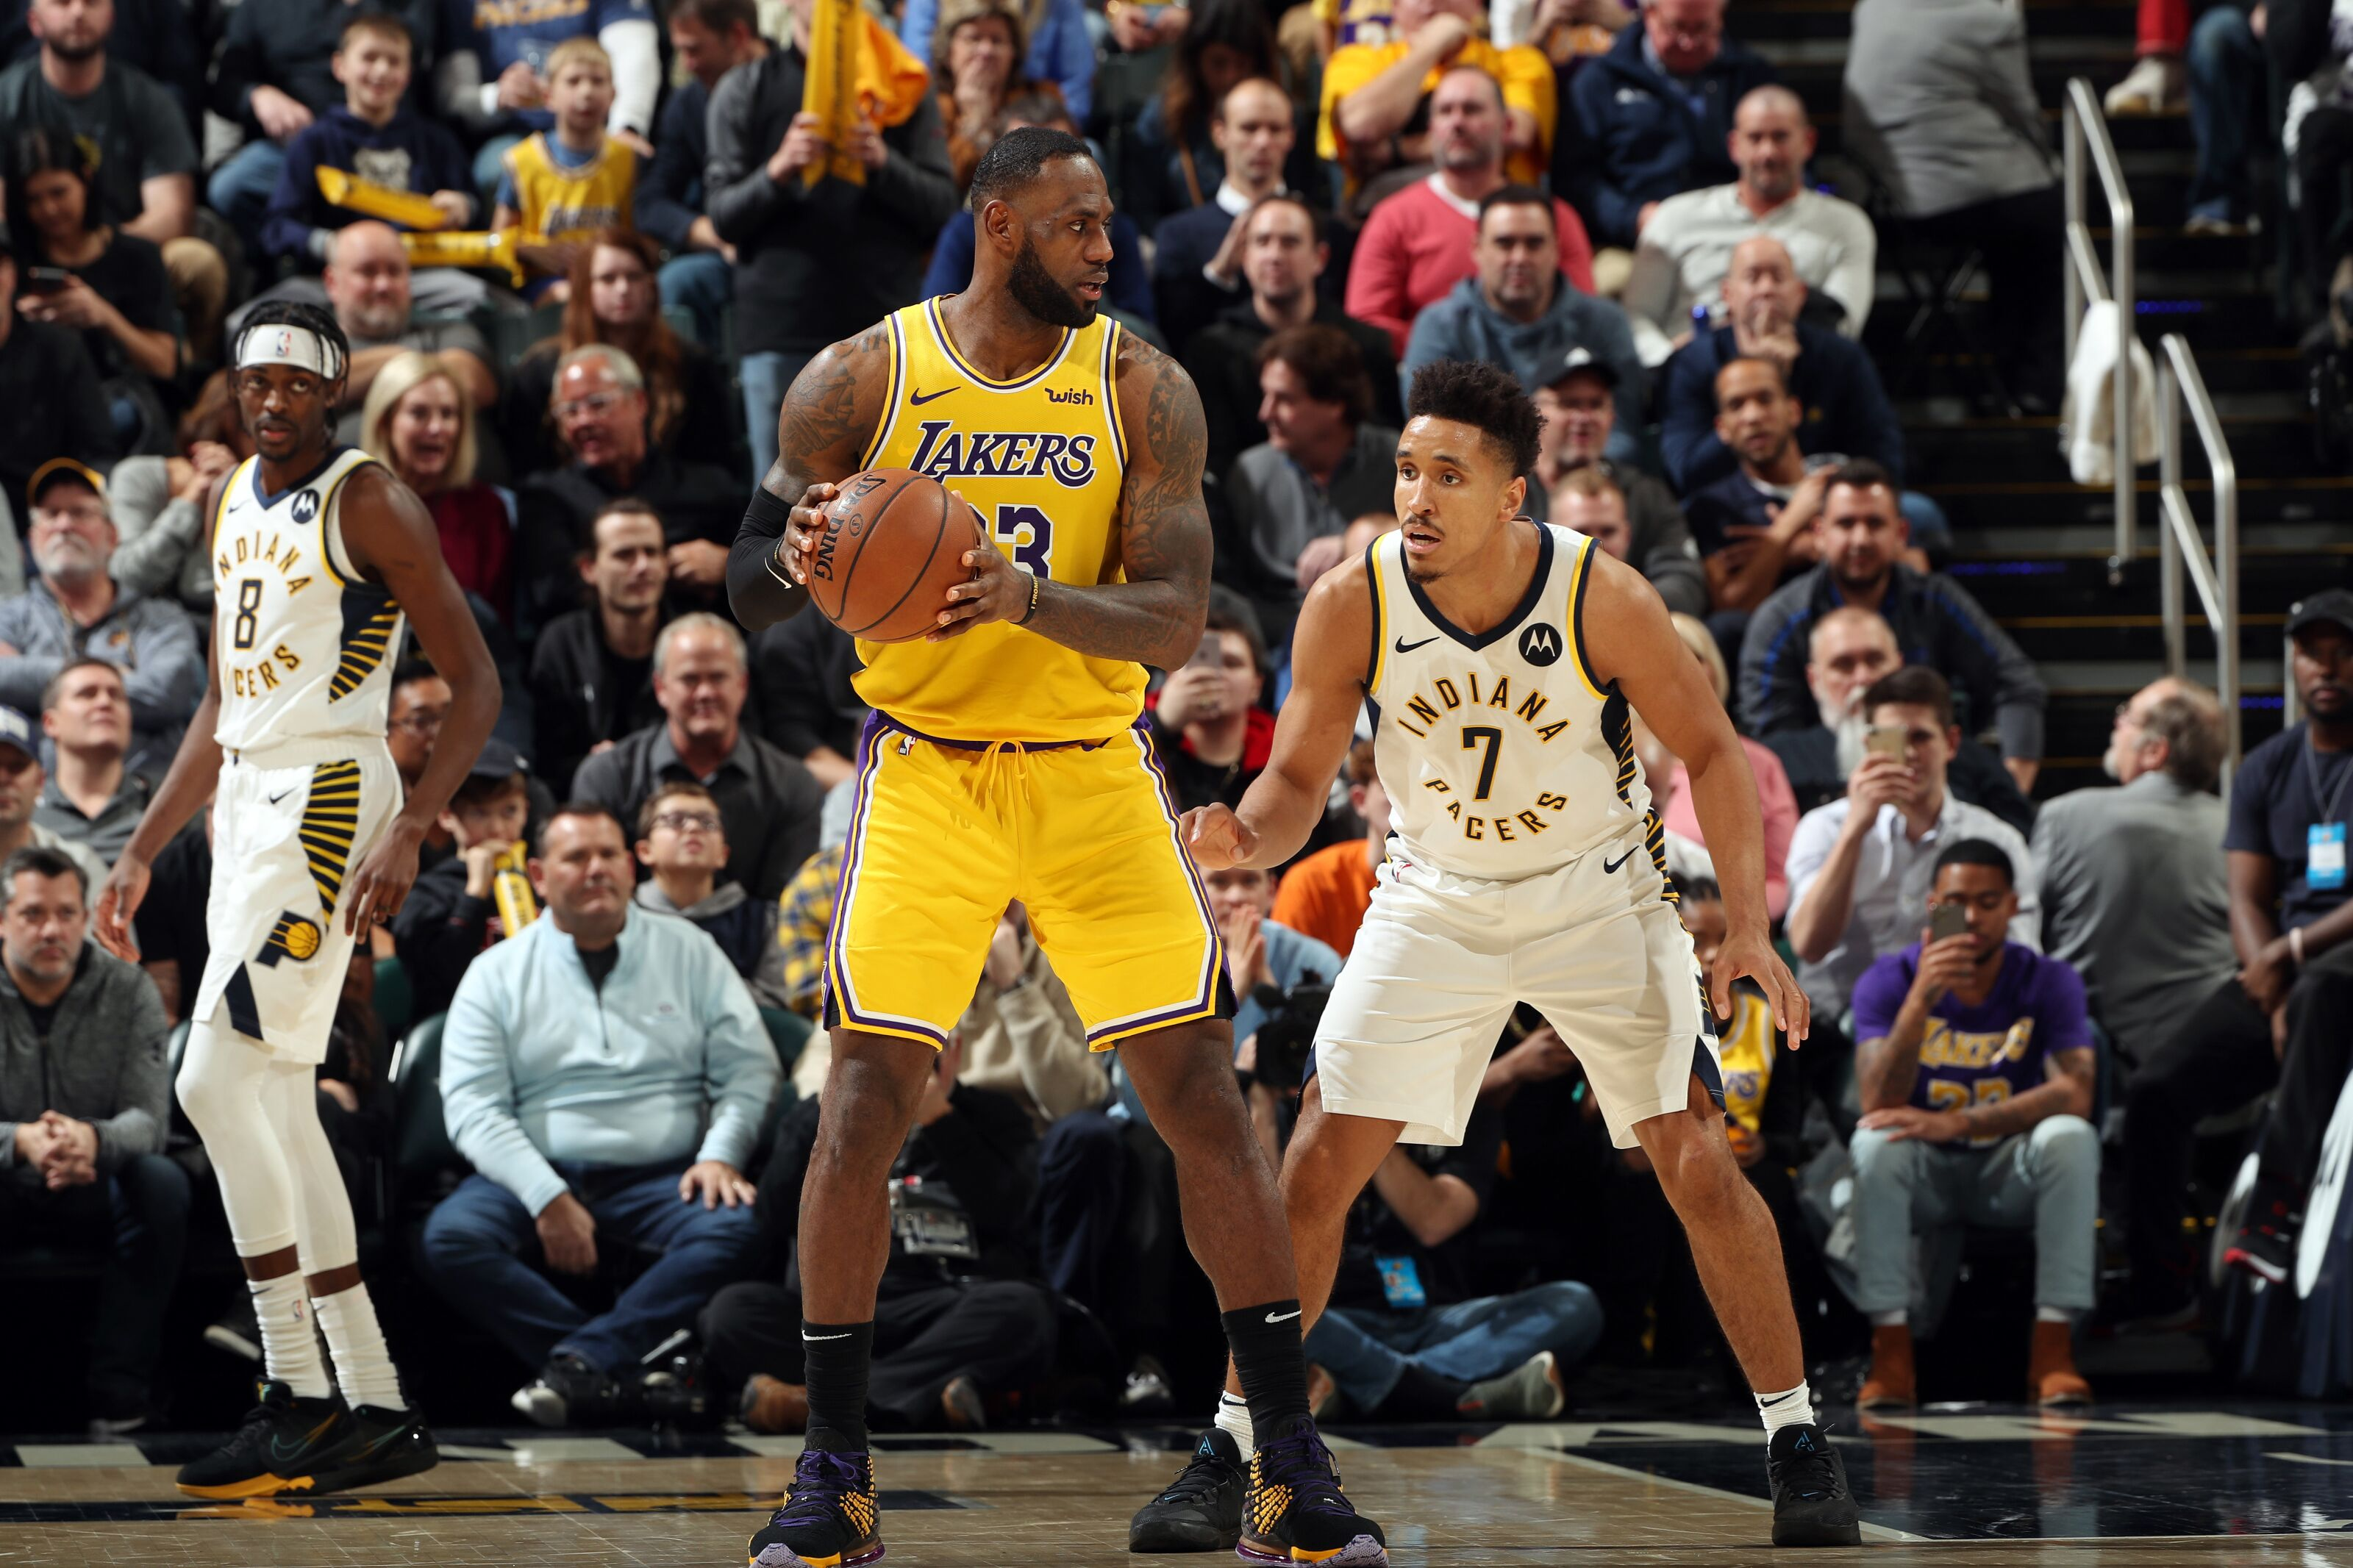 The Indiana Pacers and their Lack of National Attention